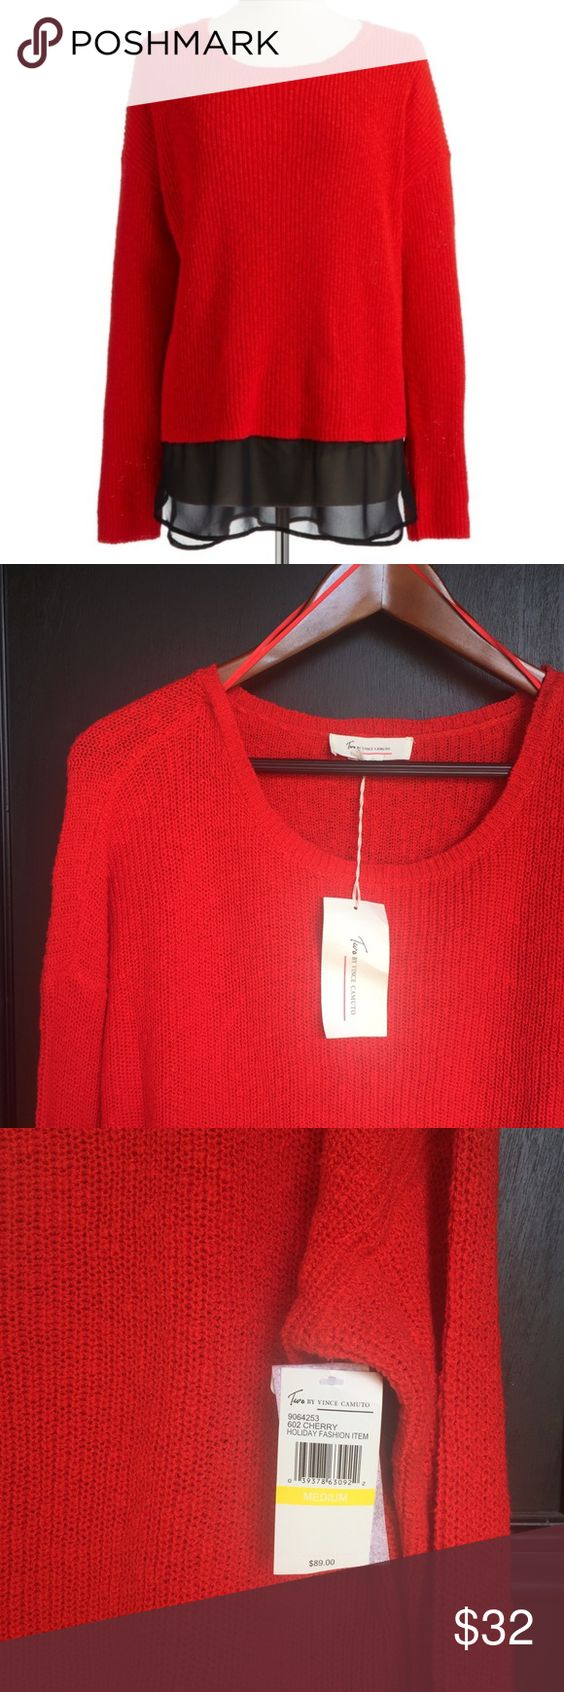 TWO by Vince Camuto | Cherry Red Sweater NWT